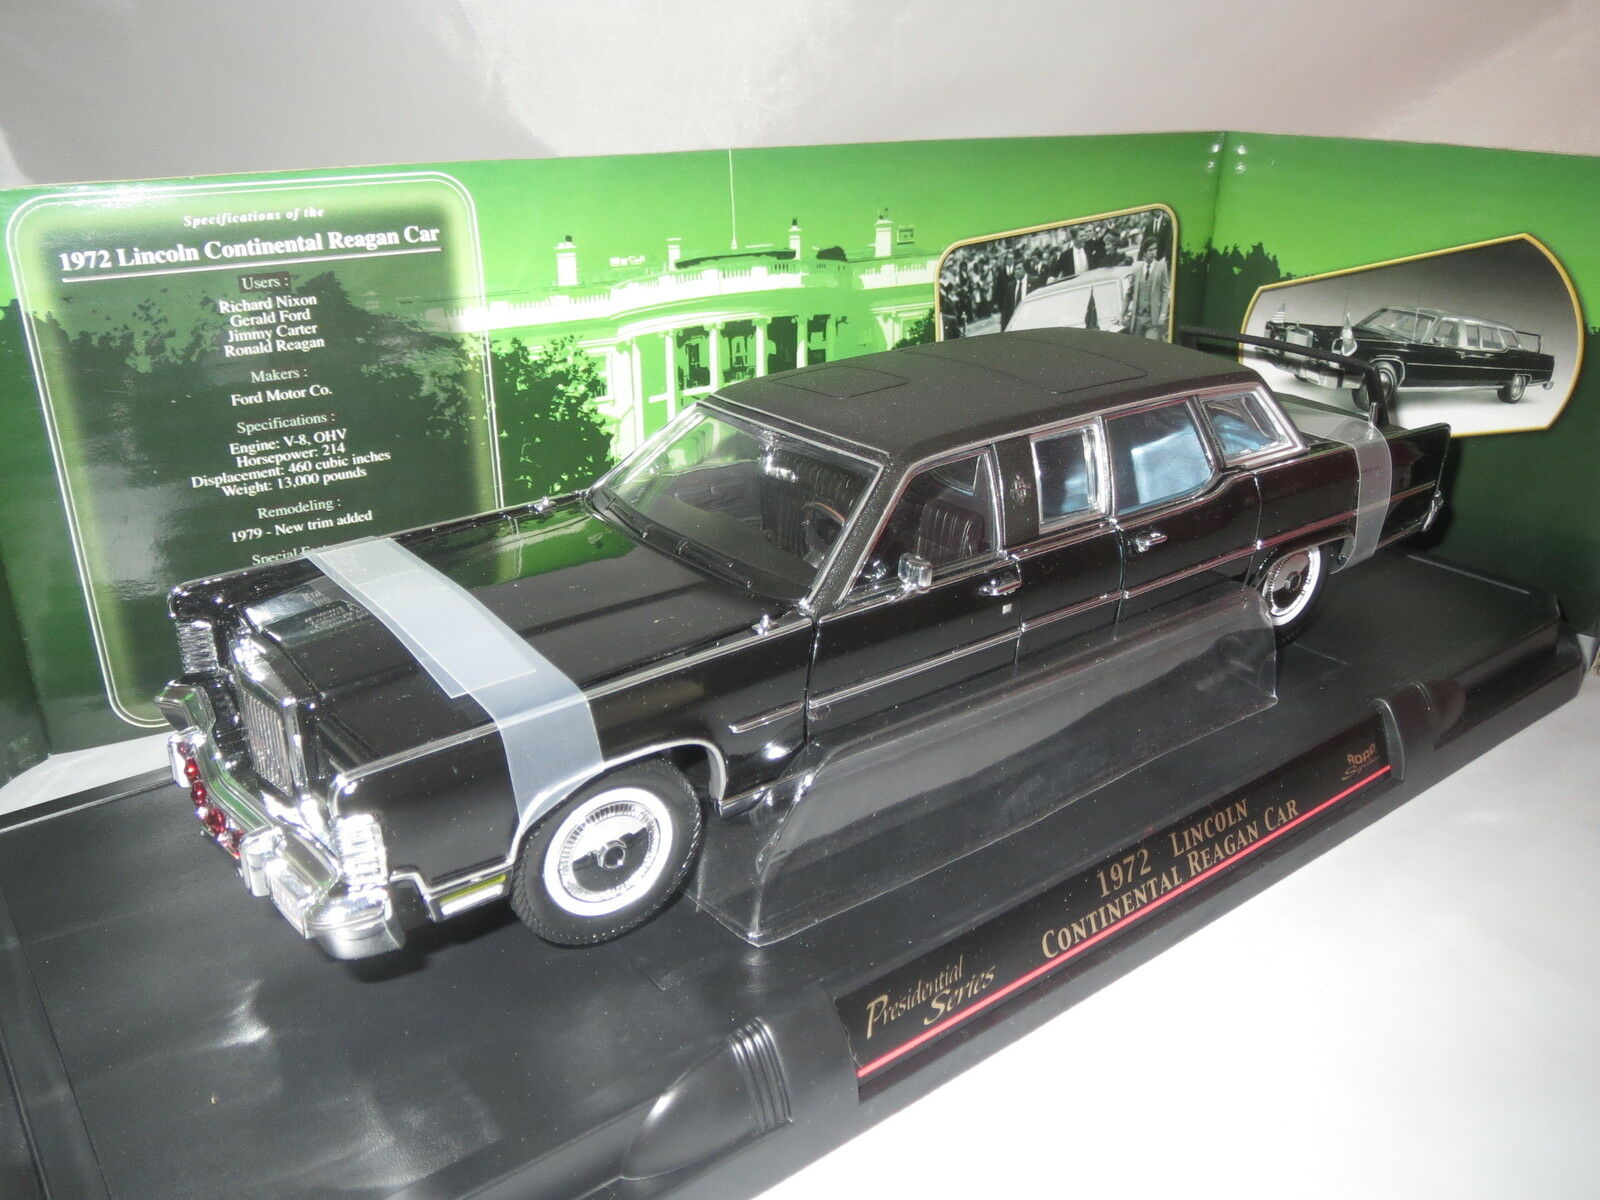 Road signature  1972  Lincoln Continental reagan car (Noir) 1 24 OVP